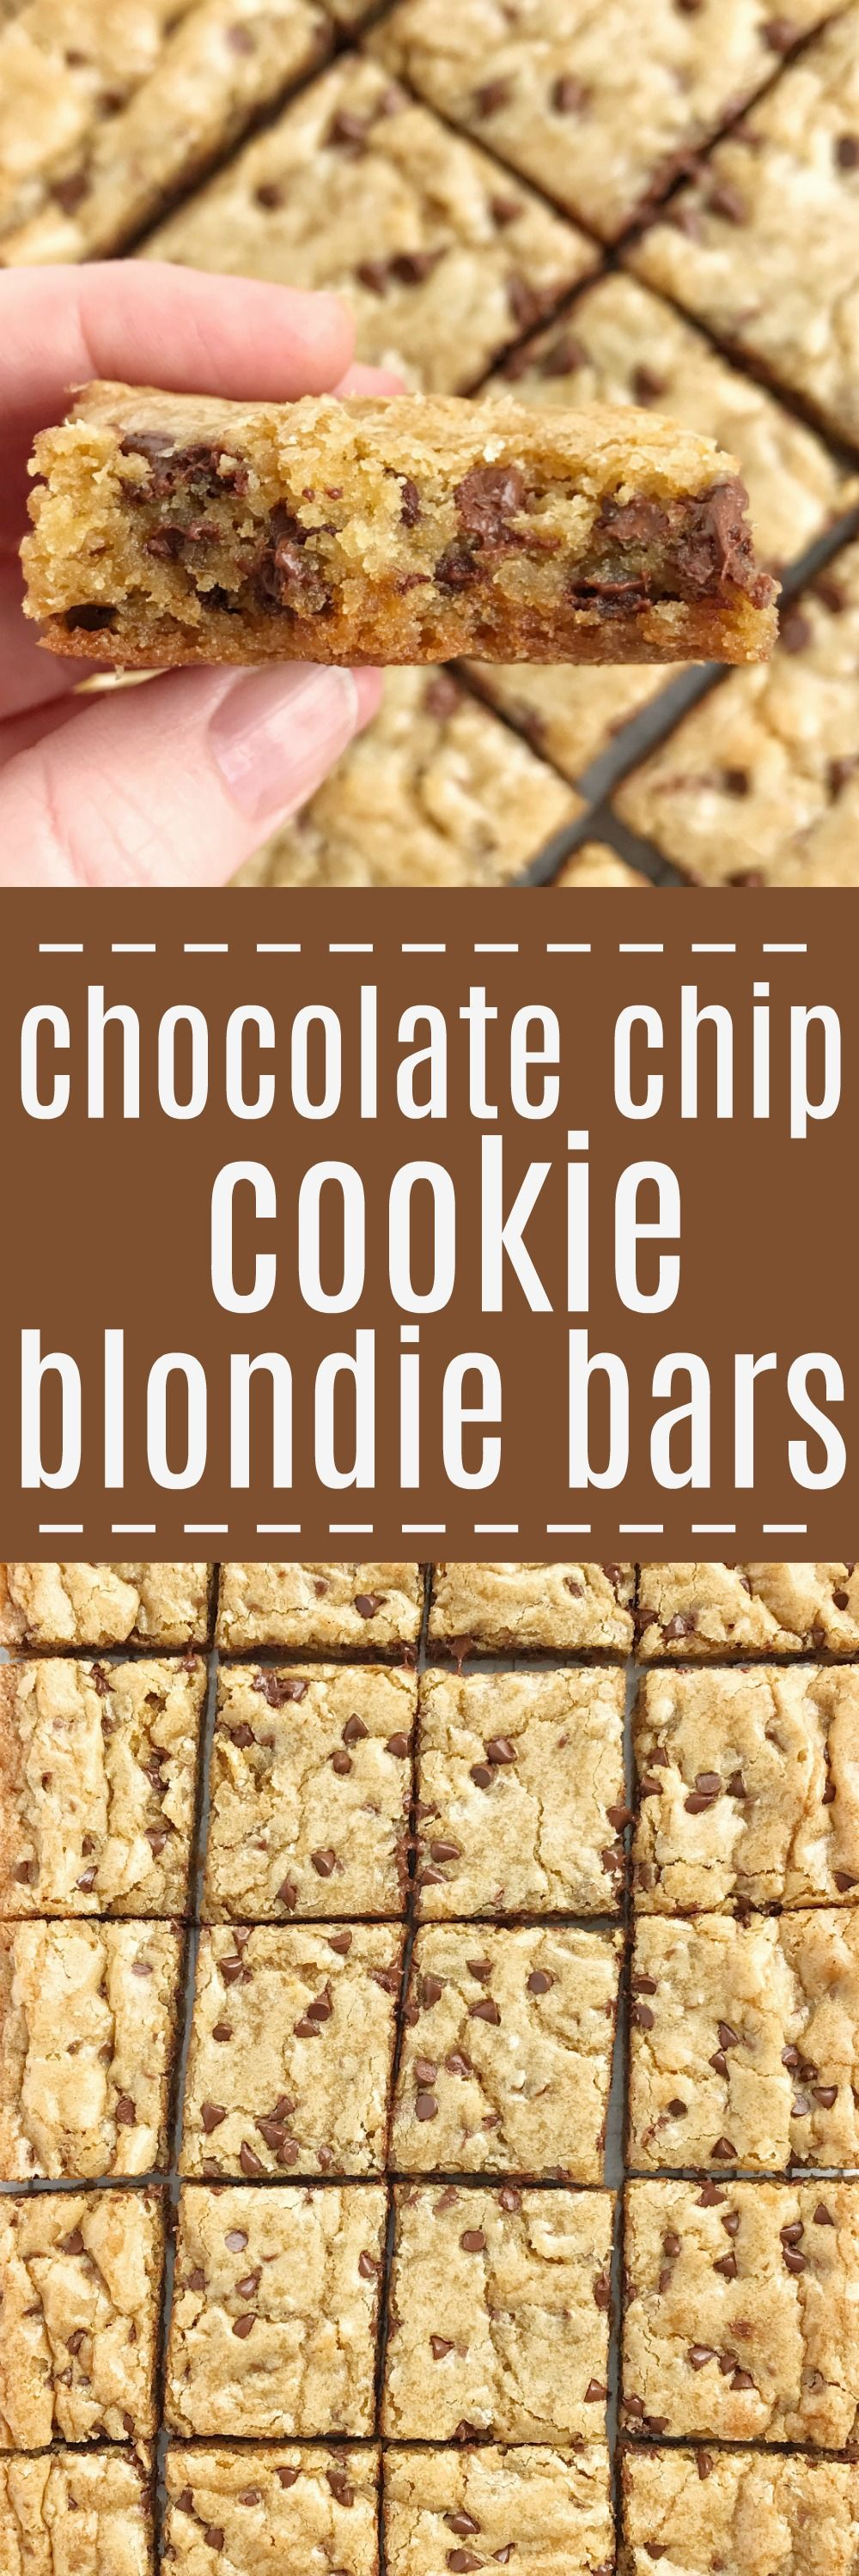 Chocolate chip cookie blondie bars are a chewy cookie bar loaded with chocolate chips and the best dessert! These bars bake in one pan and are so simple to make. They bake up perfectly sweet #chocolatechipcookies